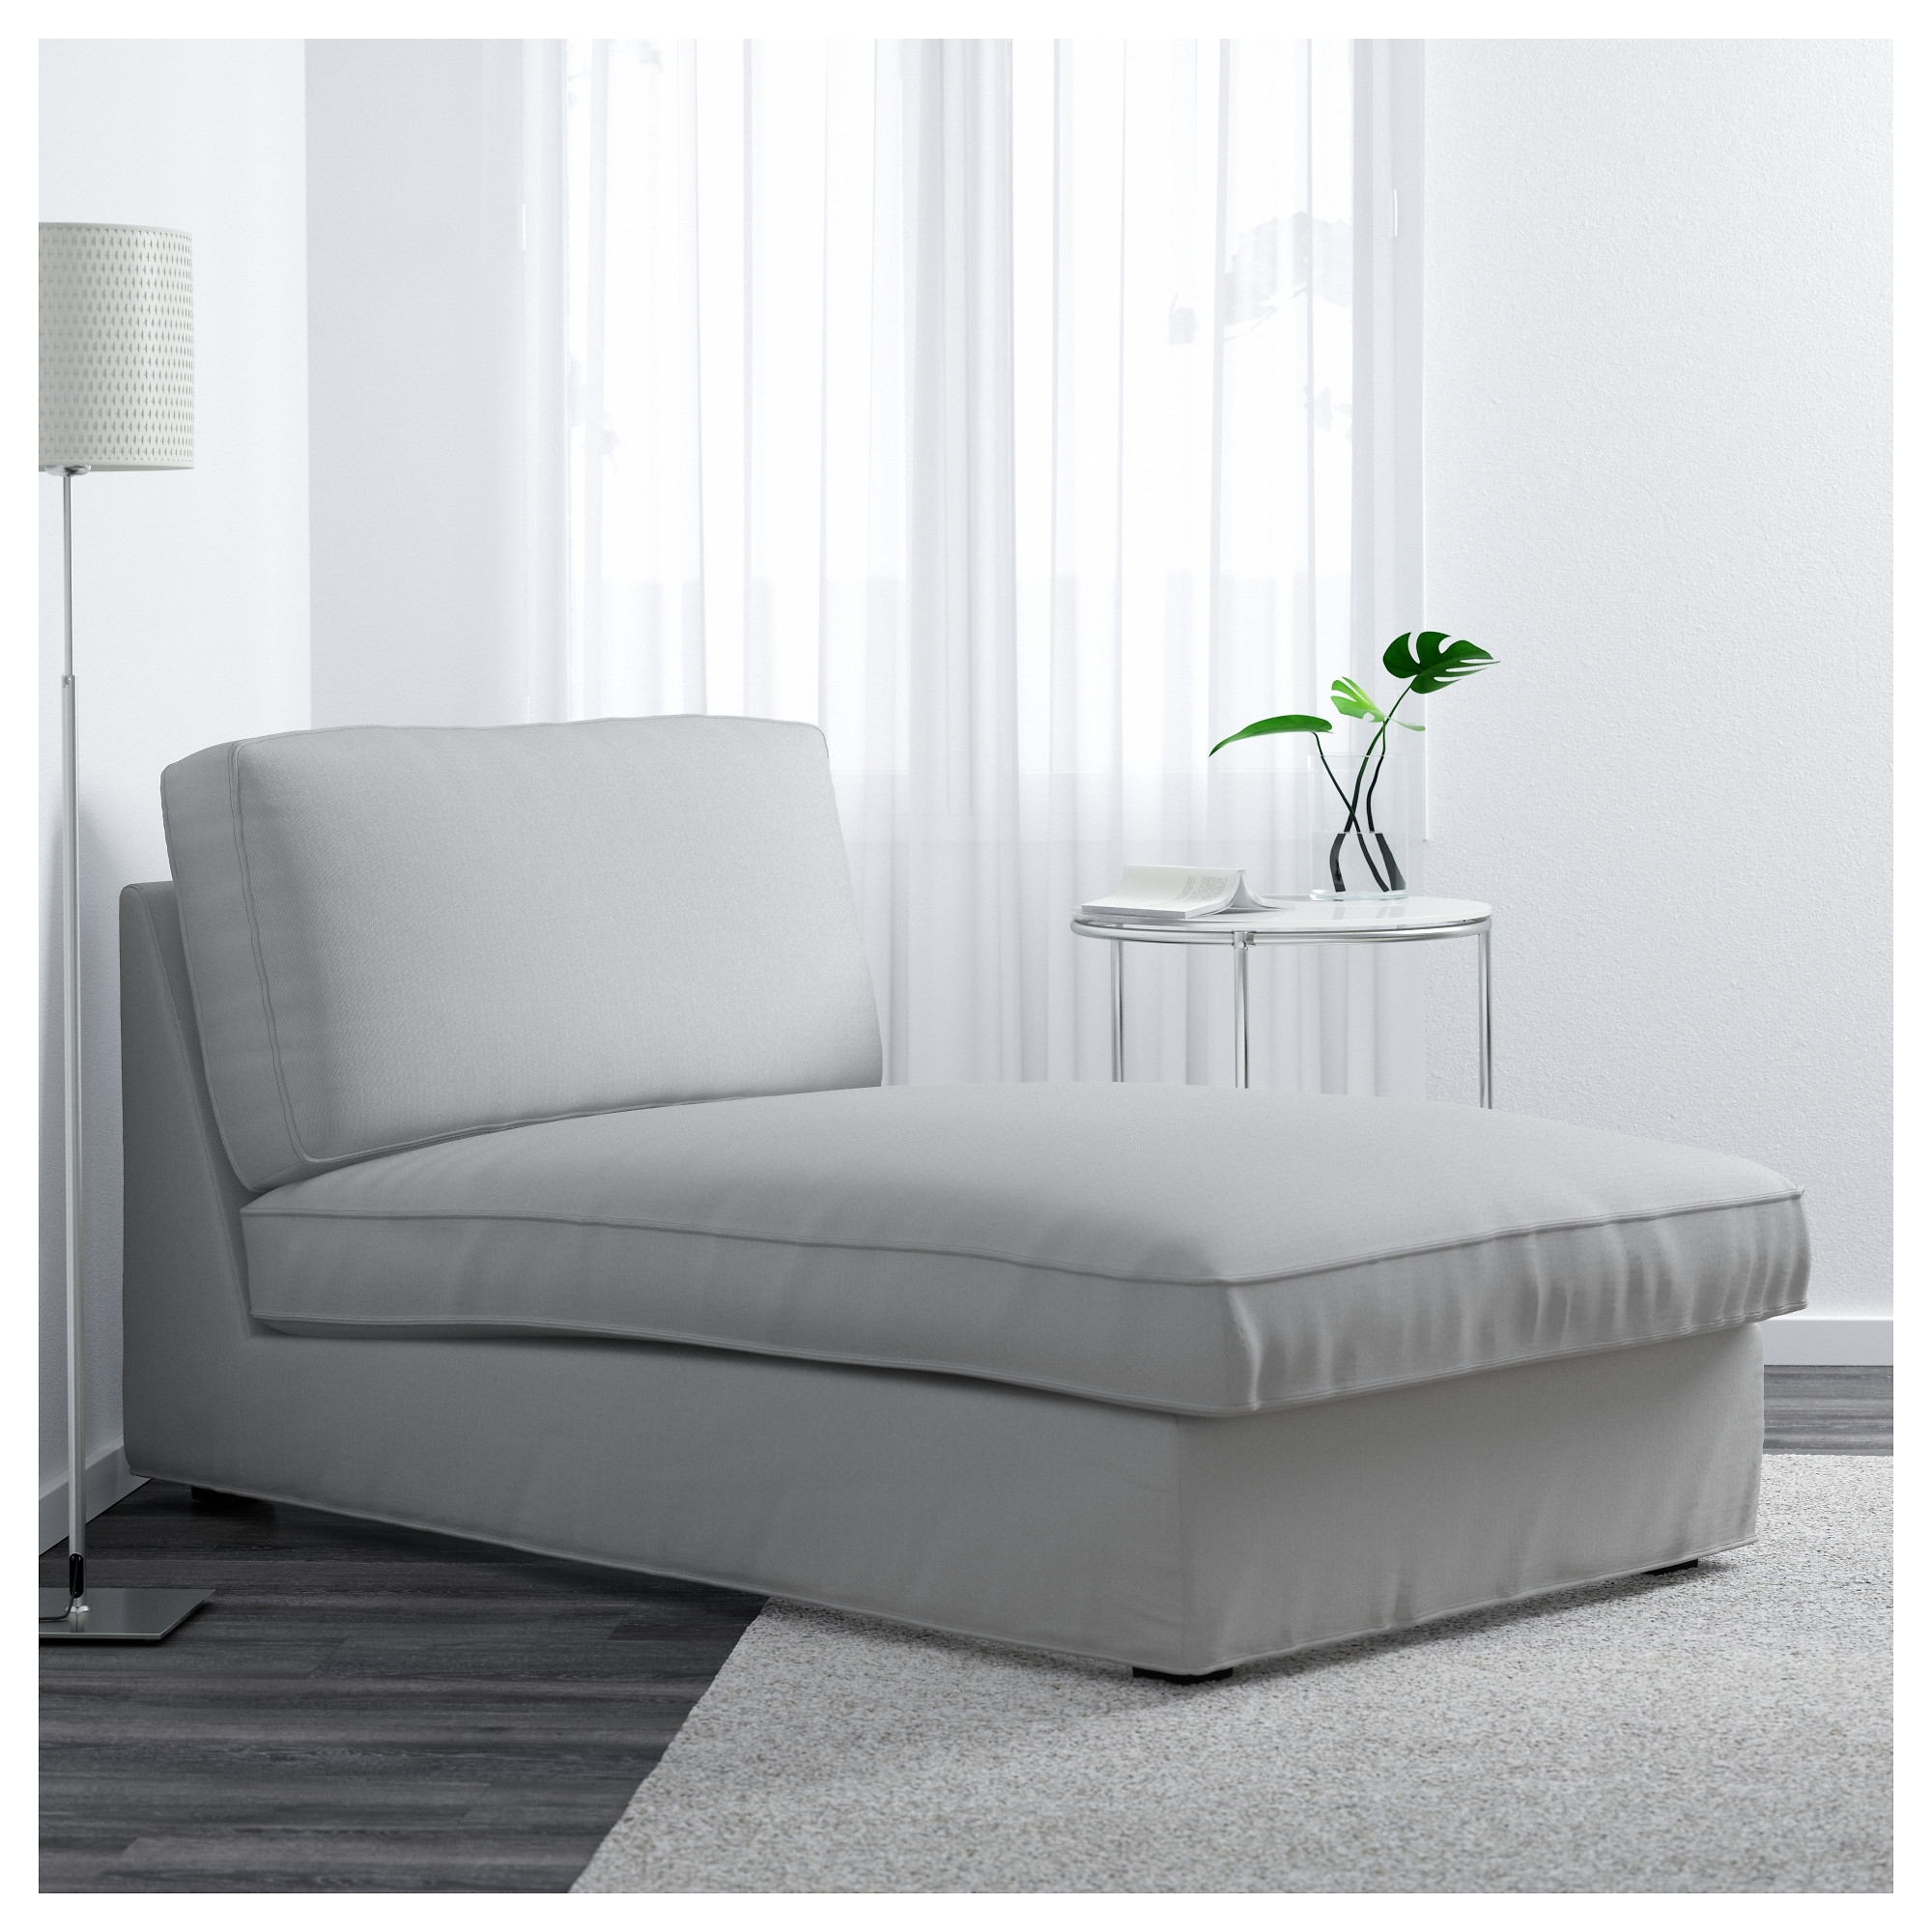 Well Known Kivik Chaise Longue Ramna Light Grey – Ikea Intended For Ikea Chaise Lounge Chairs (View 3 of 15)